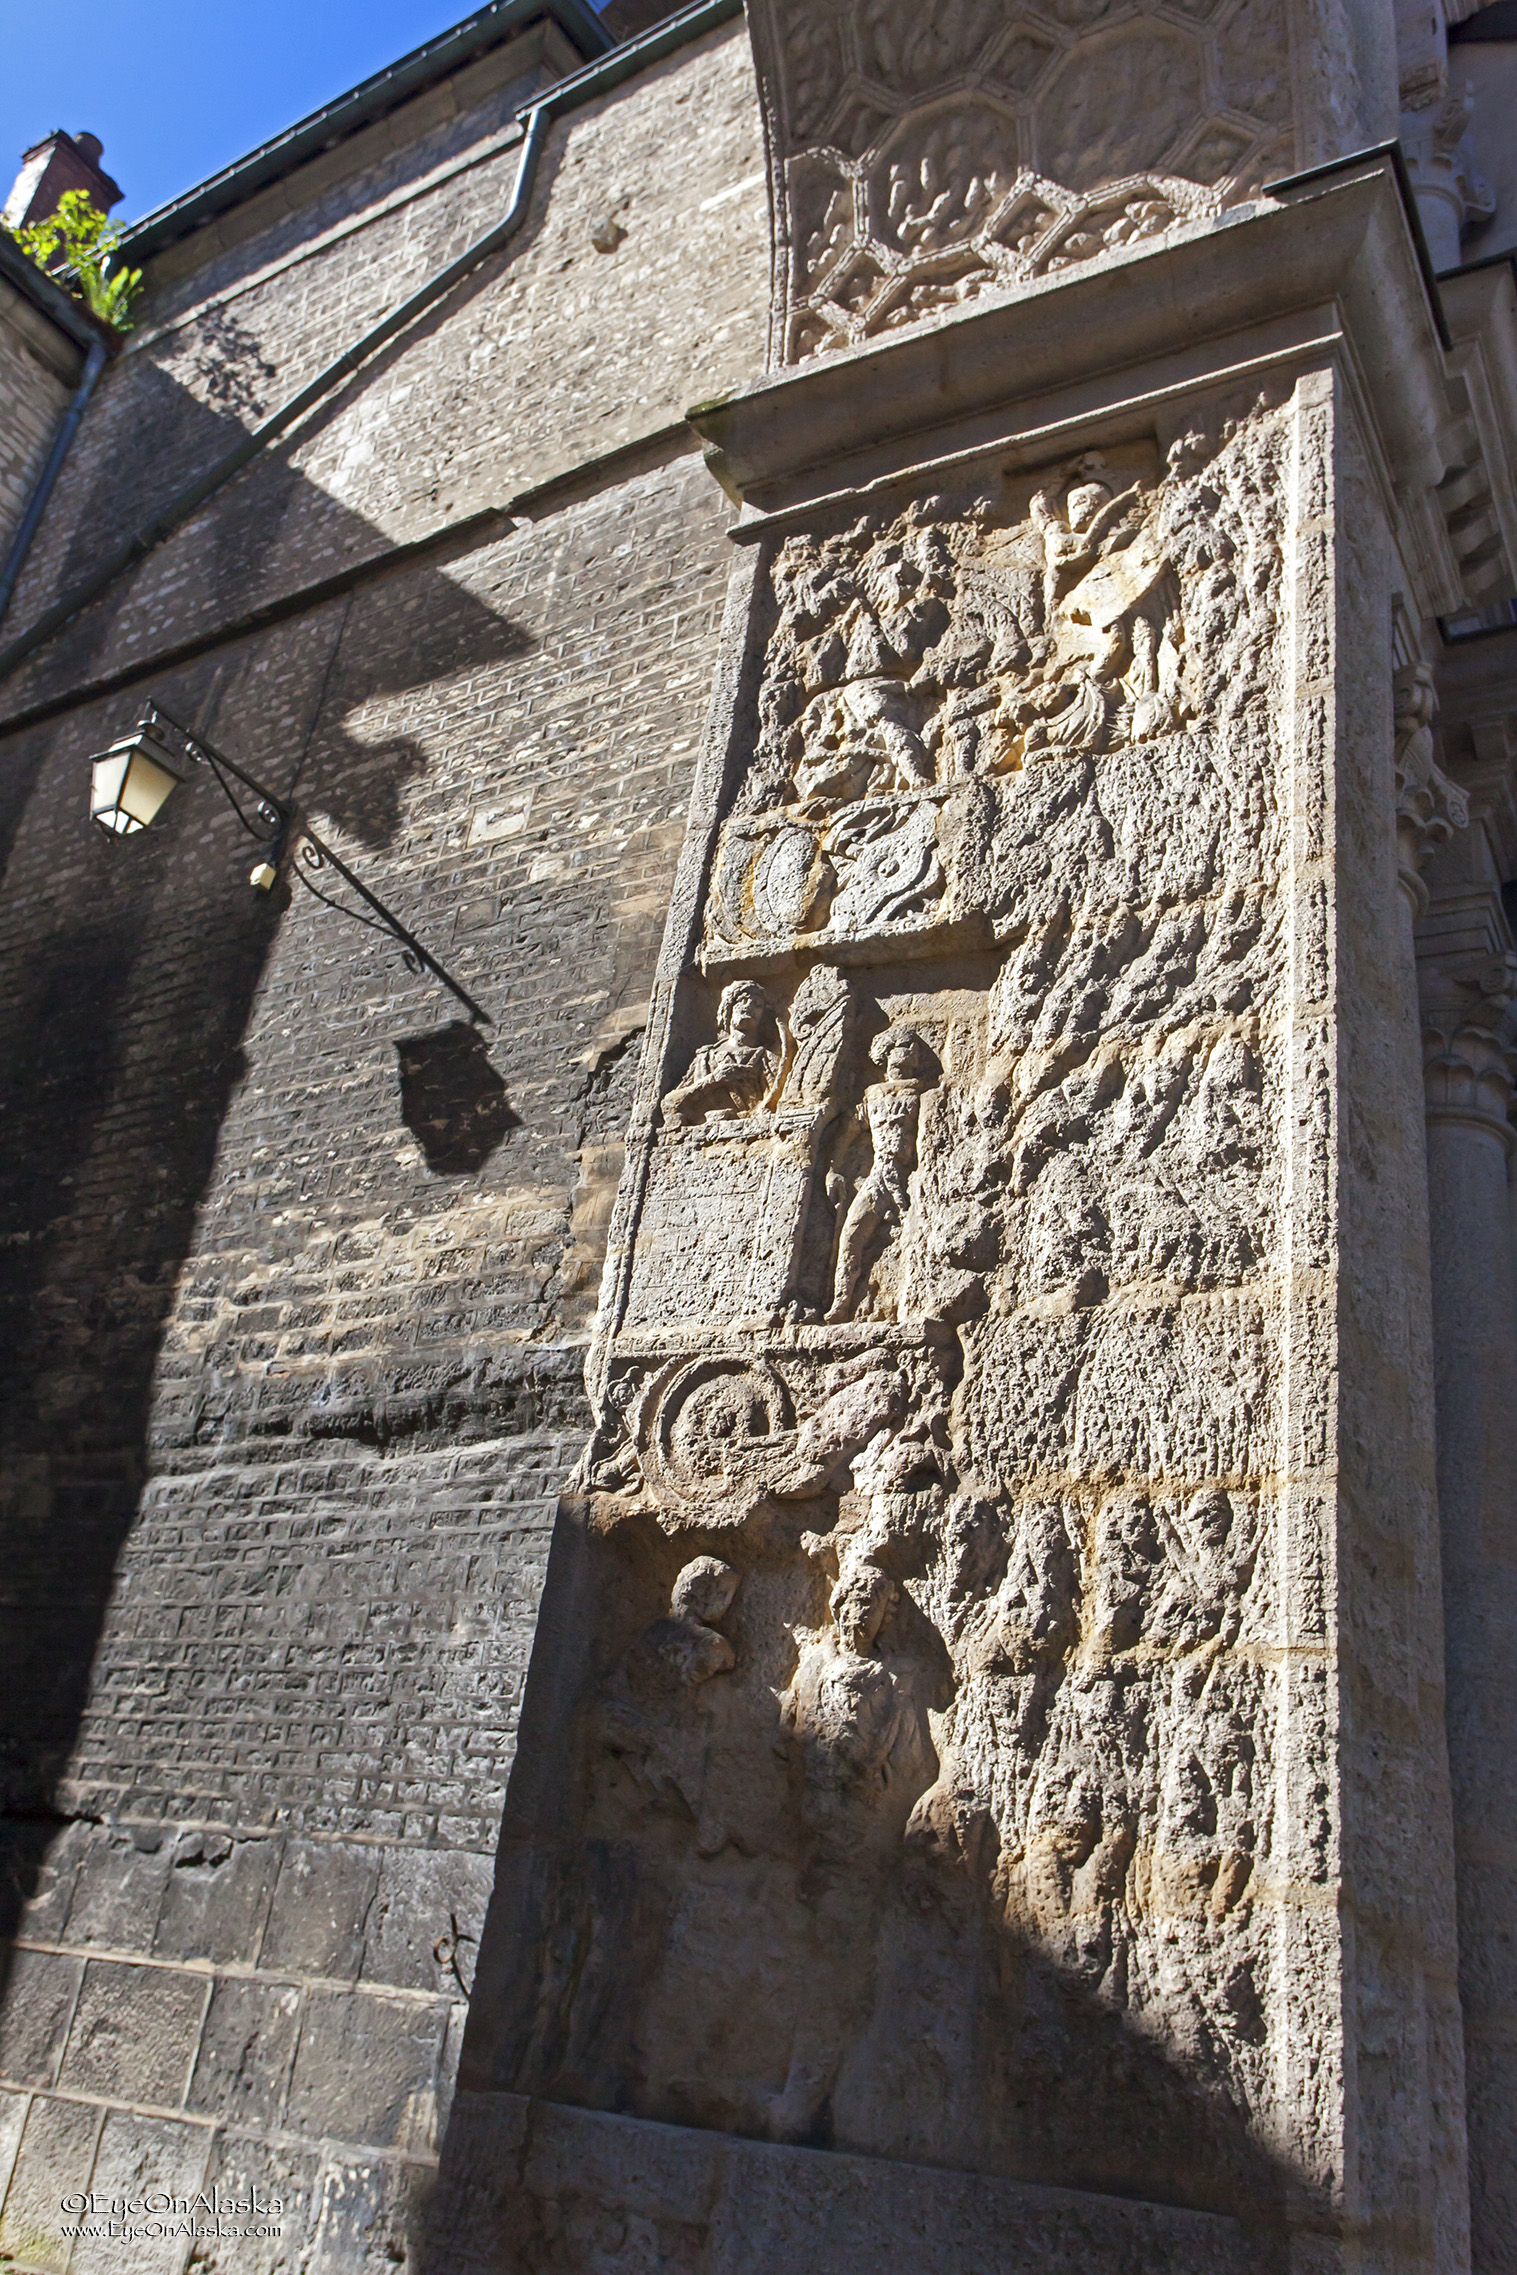 Stonework and carvings near the Cathedral.